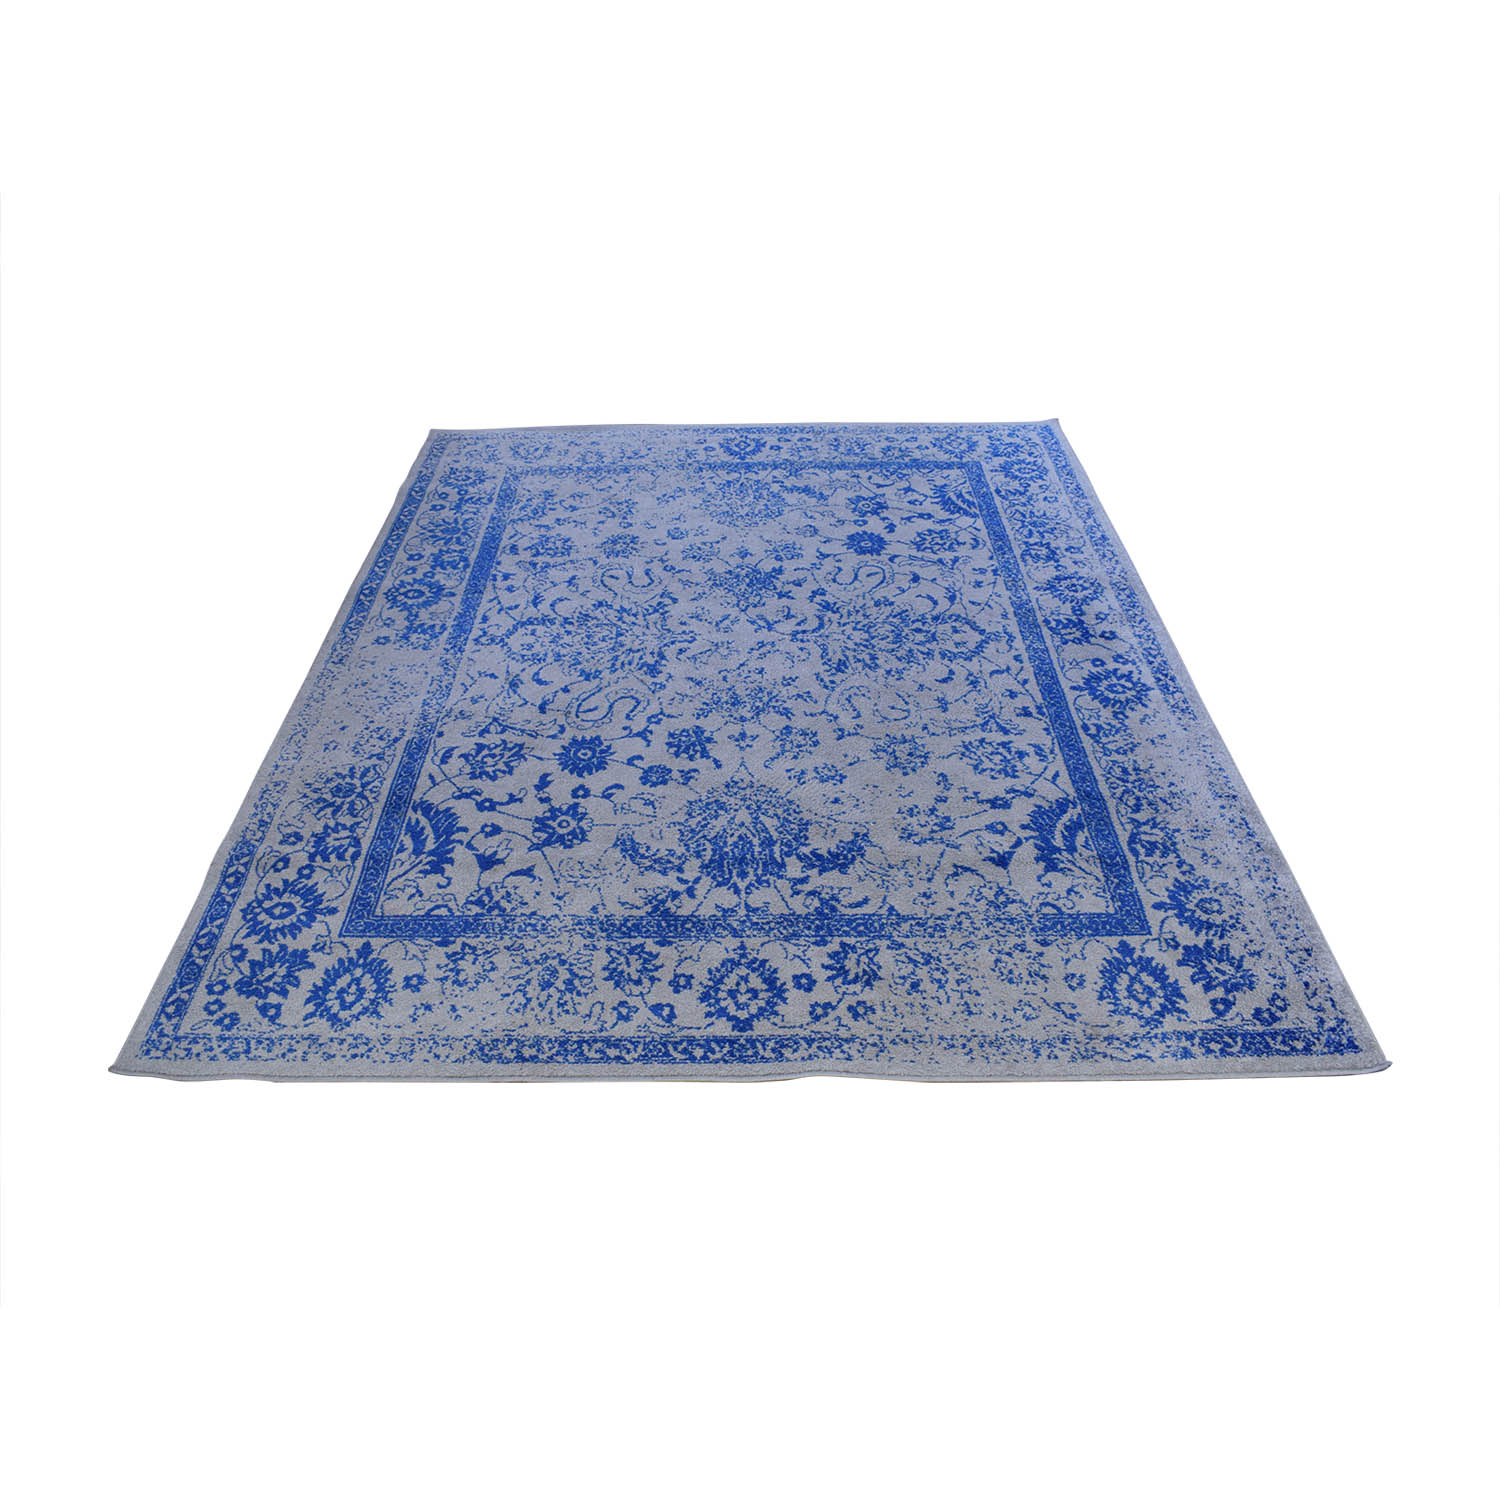 Safavieh Safavieh Patterned Area Rug nyc